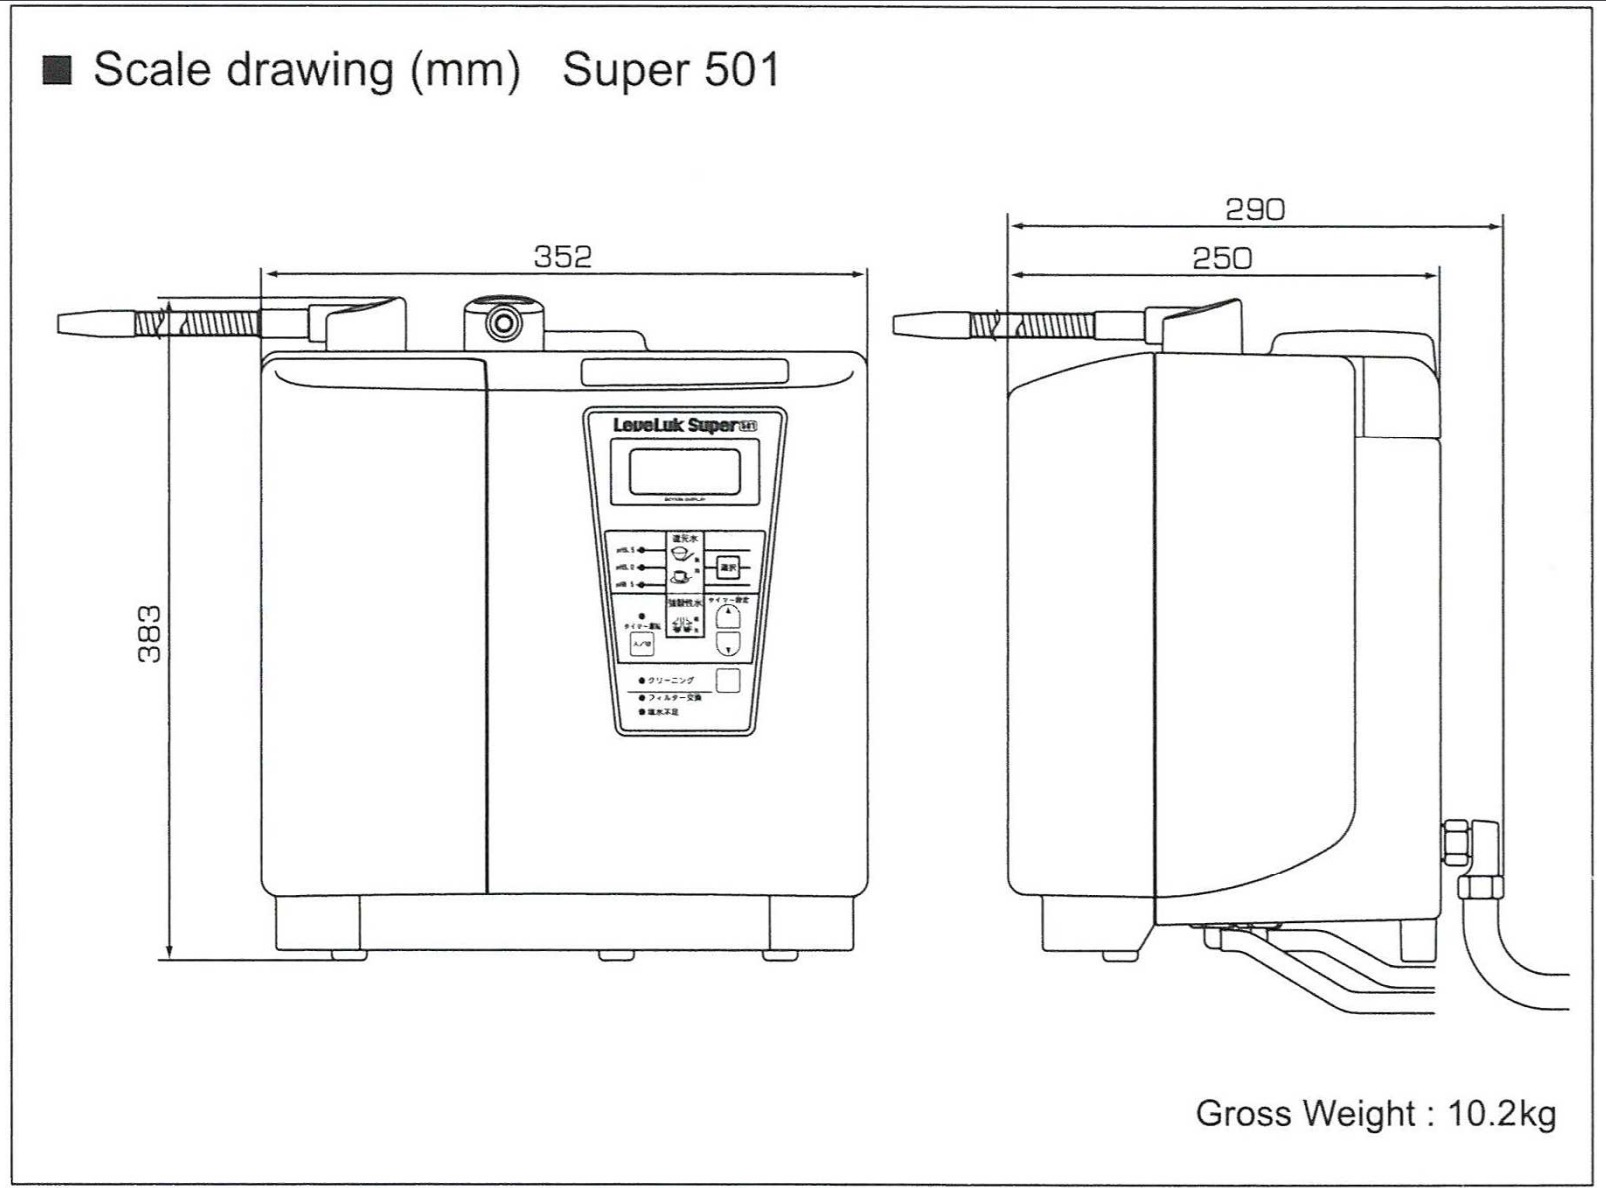 LeveLuk Super 501 Scale Drawing